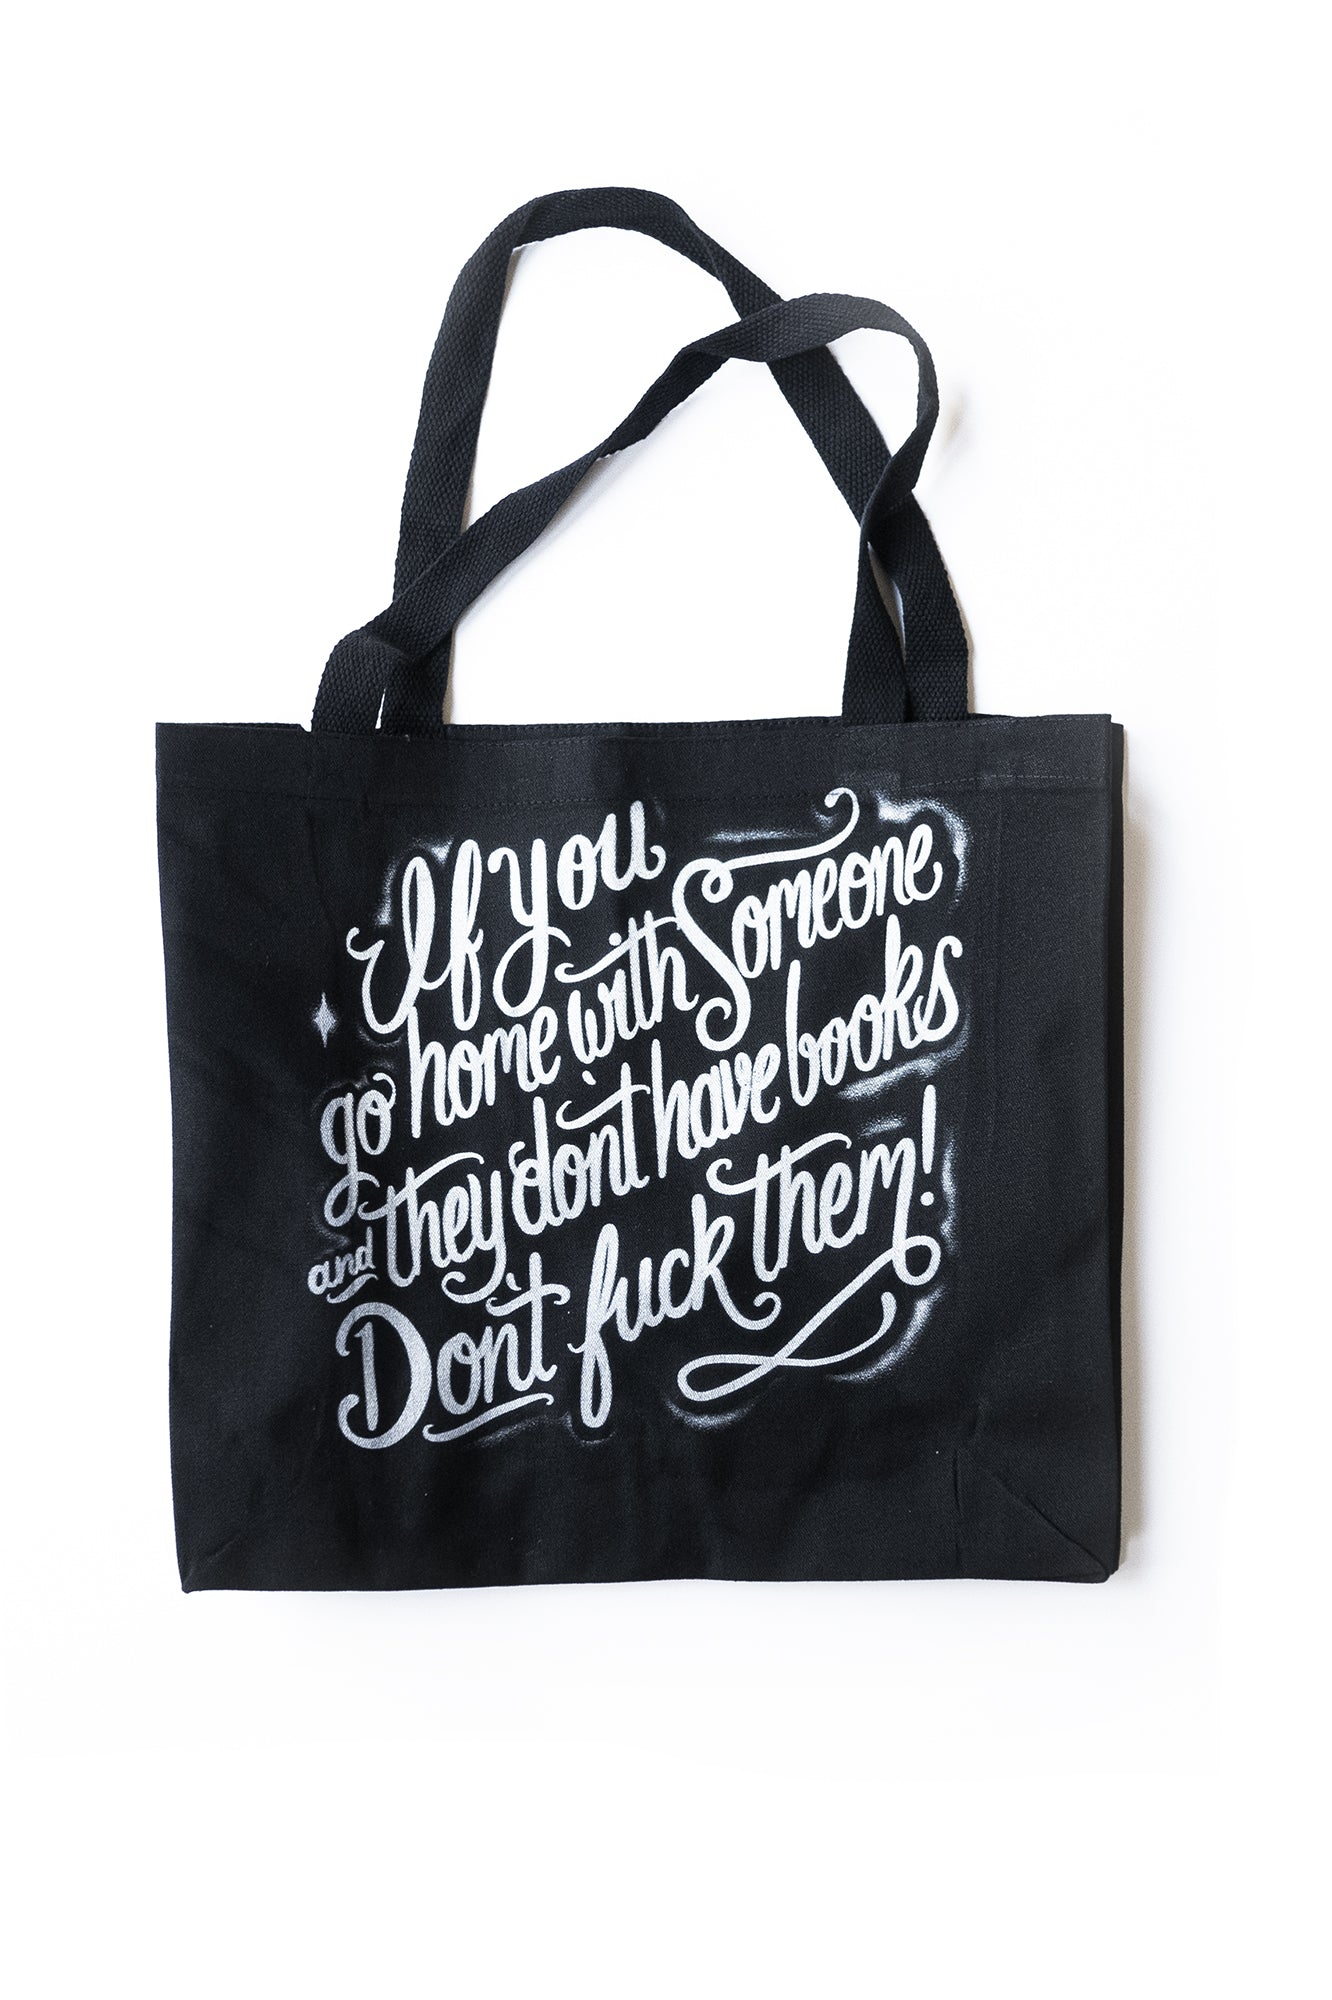 John Waters Quote tote bag